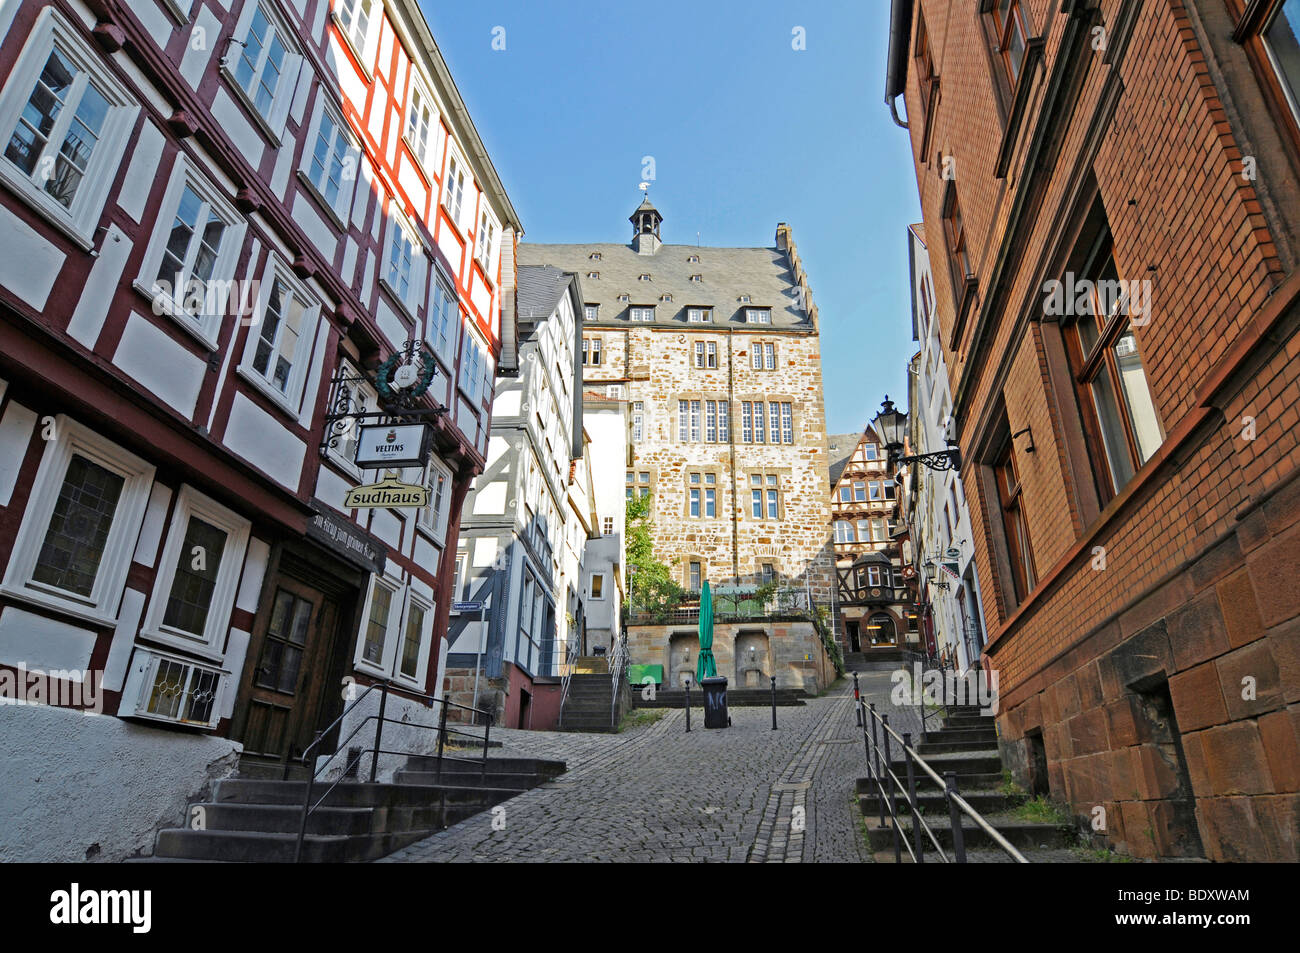 Steile Strasse street, historic half-timbered houses, historic centre, Marburg, Hesse, Germany, Europe Stock Photo